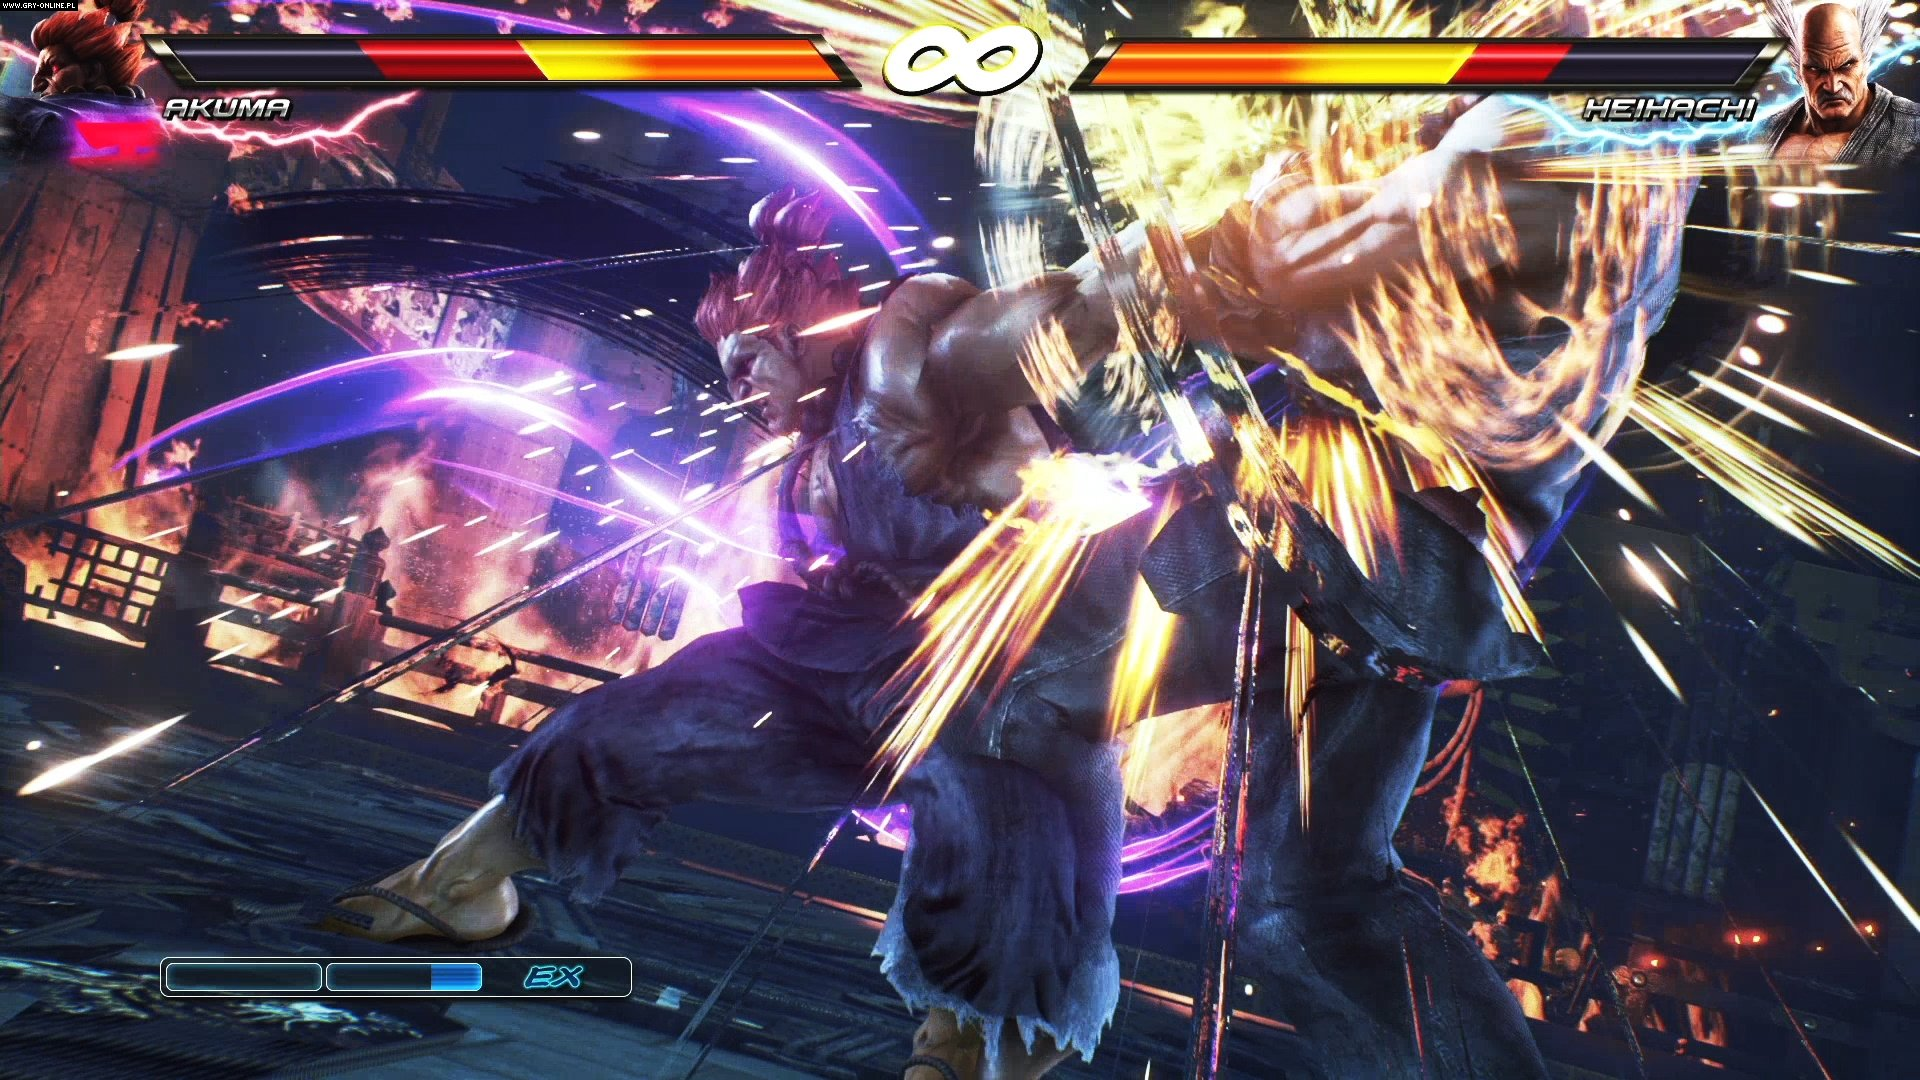 Tekken 7 PS4, XONE Games Image 124/145, Bandai Namco Entertainment